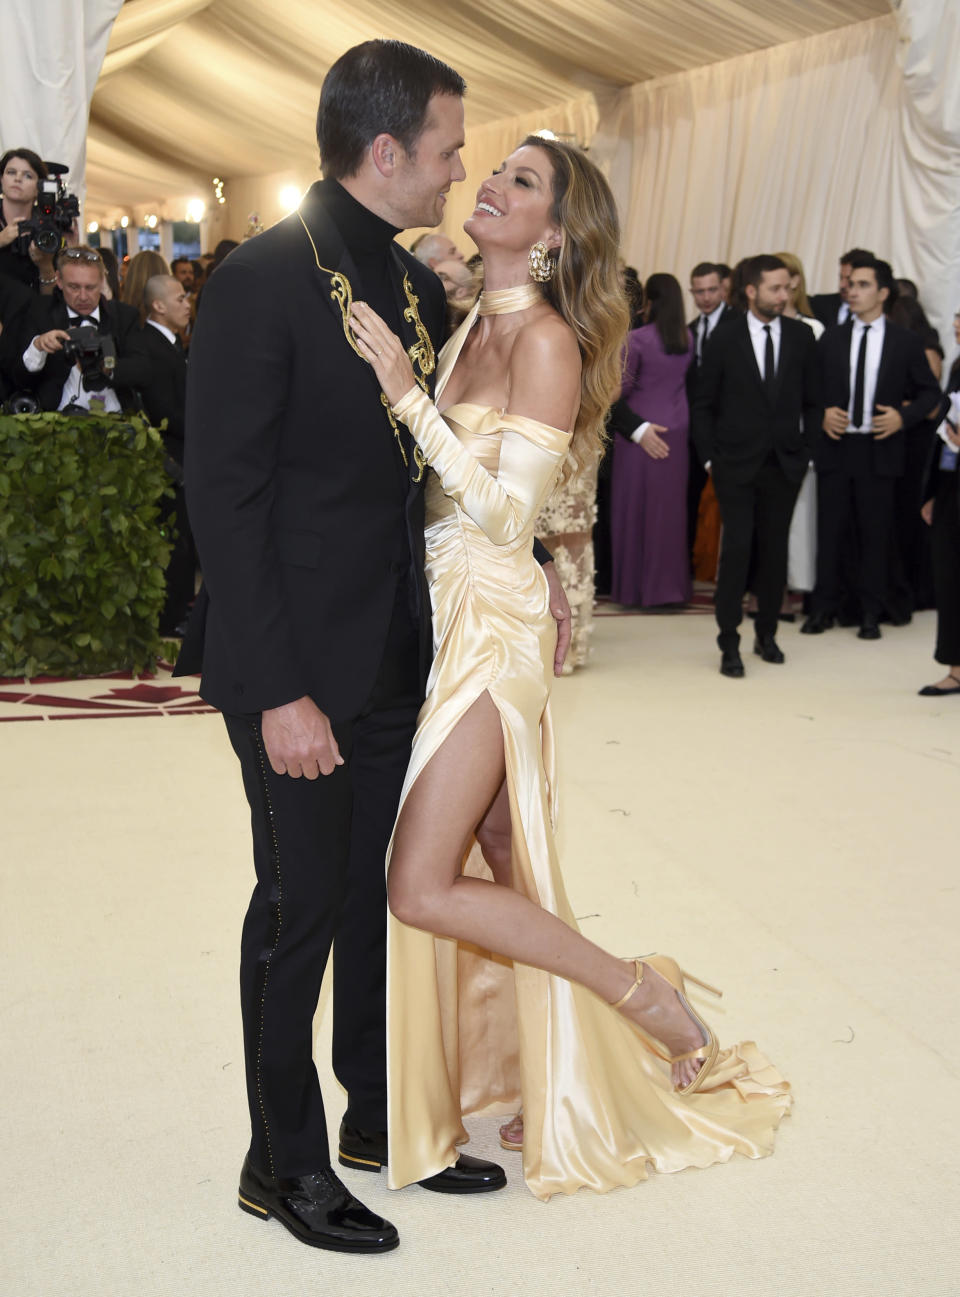 Brady and Bündchen wore matching looks Monday night at the Met Gala to celebrate the opening of the Heavenly Bodies: Fashion and the Catholic Imagination exhibition. (Photo: Evan Agostini/Invision/AP)